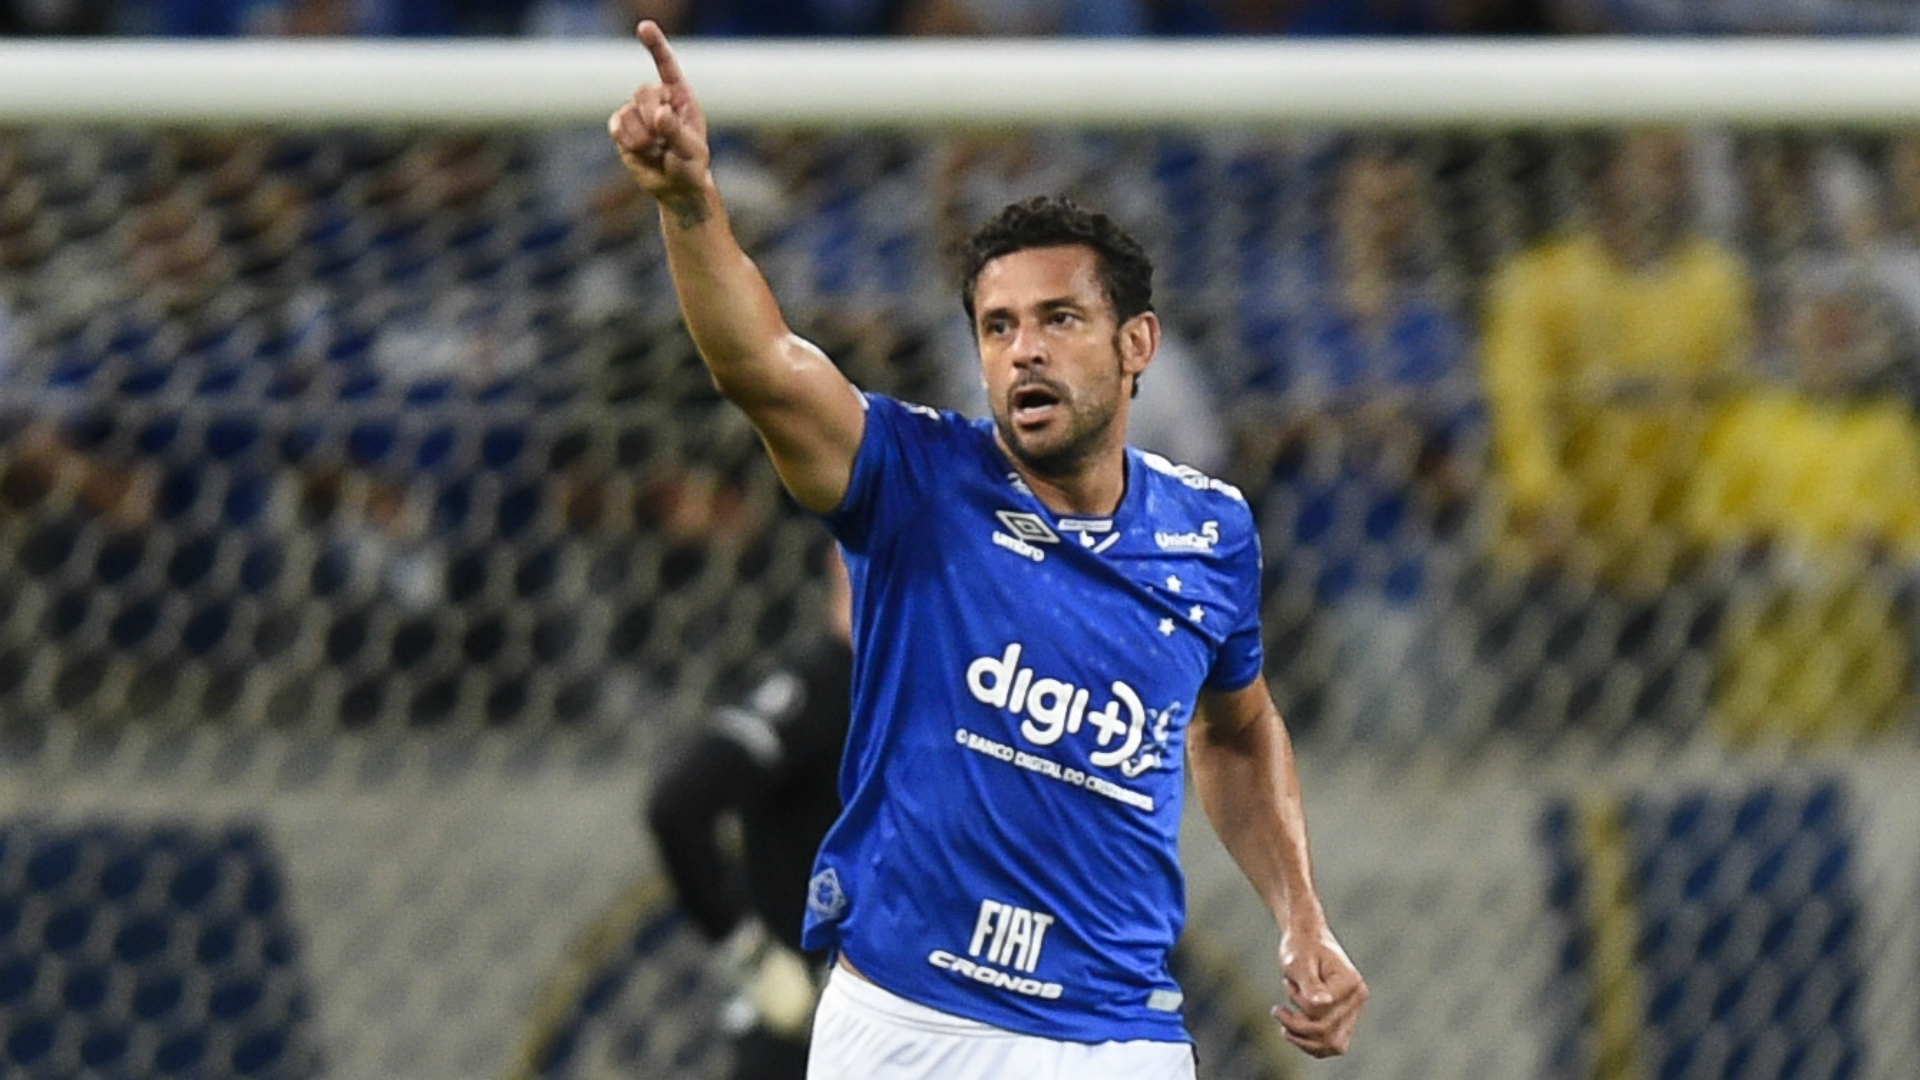 Copa Libertadores Review: Cruzeiro stay perfect, Mineiro eliminated